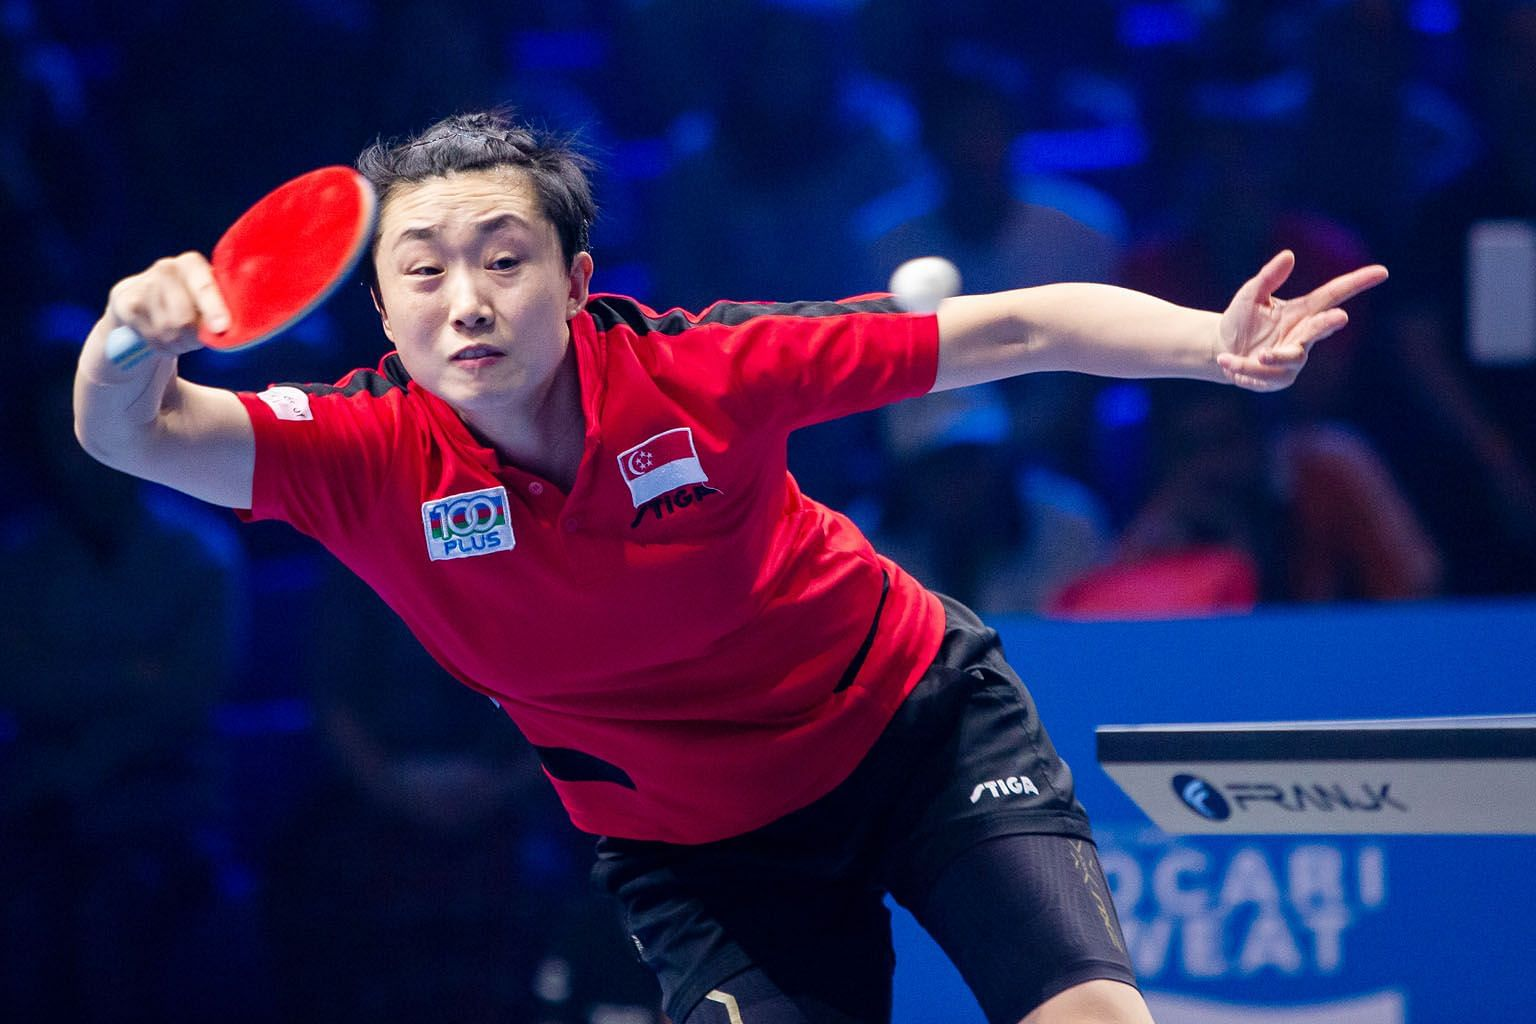 Singapore paddler Feng Tianwei's 4-2 win over Japan's world No. 9 Miu Hirano in the Seamaster T2 Diamond 2019 Malaysia leg's round of 16 was her first win over a top-10 player since December 2017. PHOTO: T2 DIAMOND